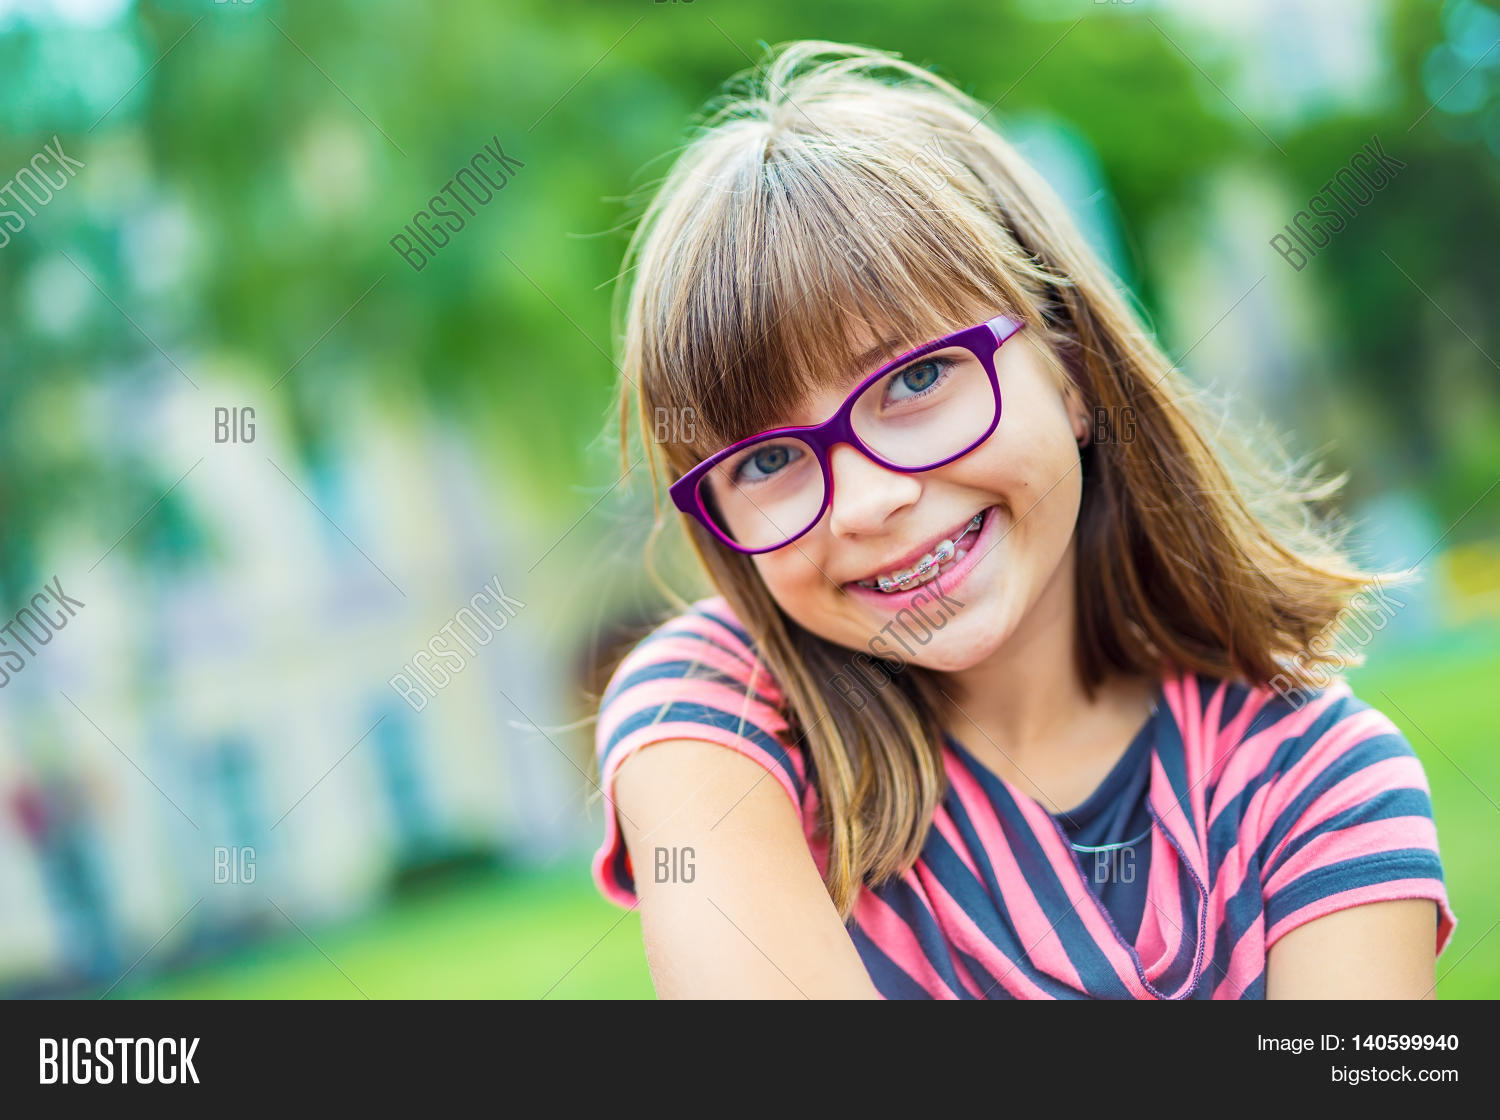 Cute teens with braces glasses would